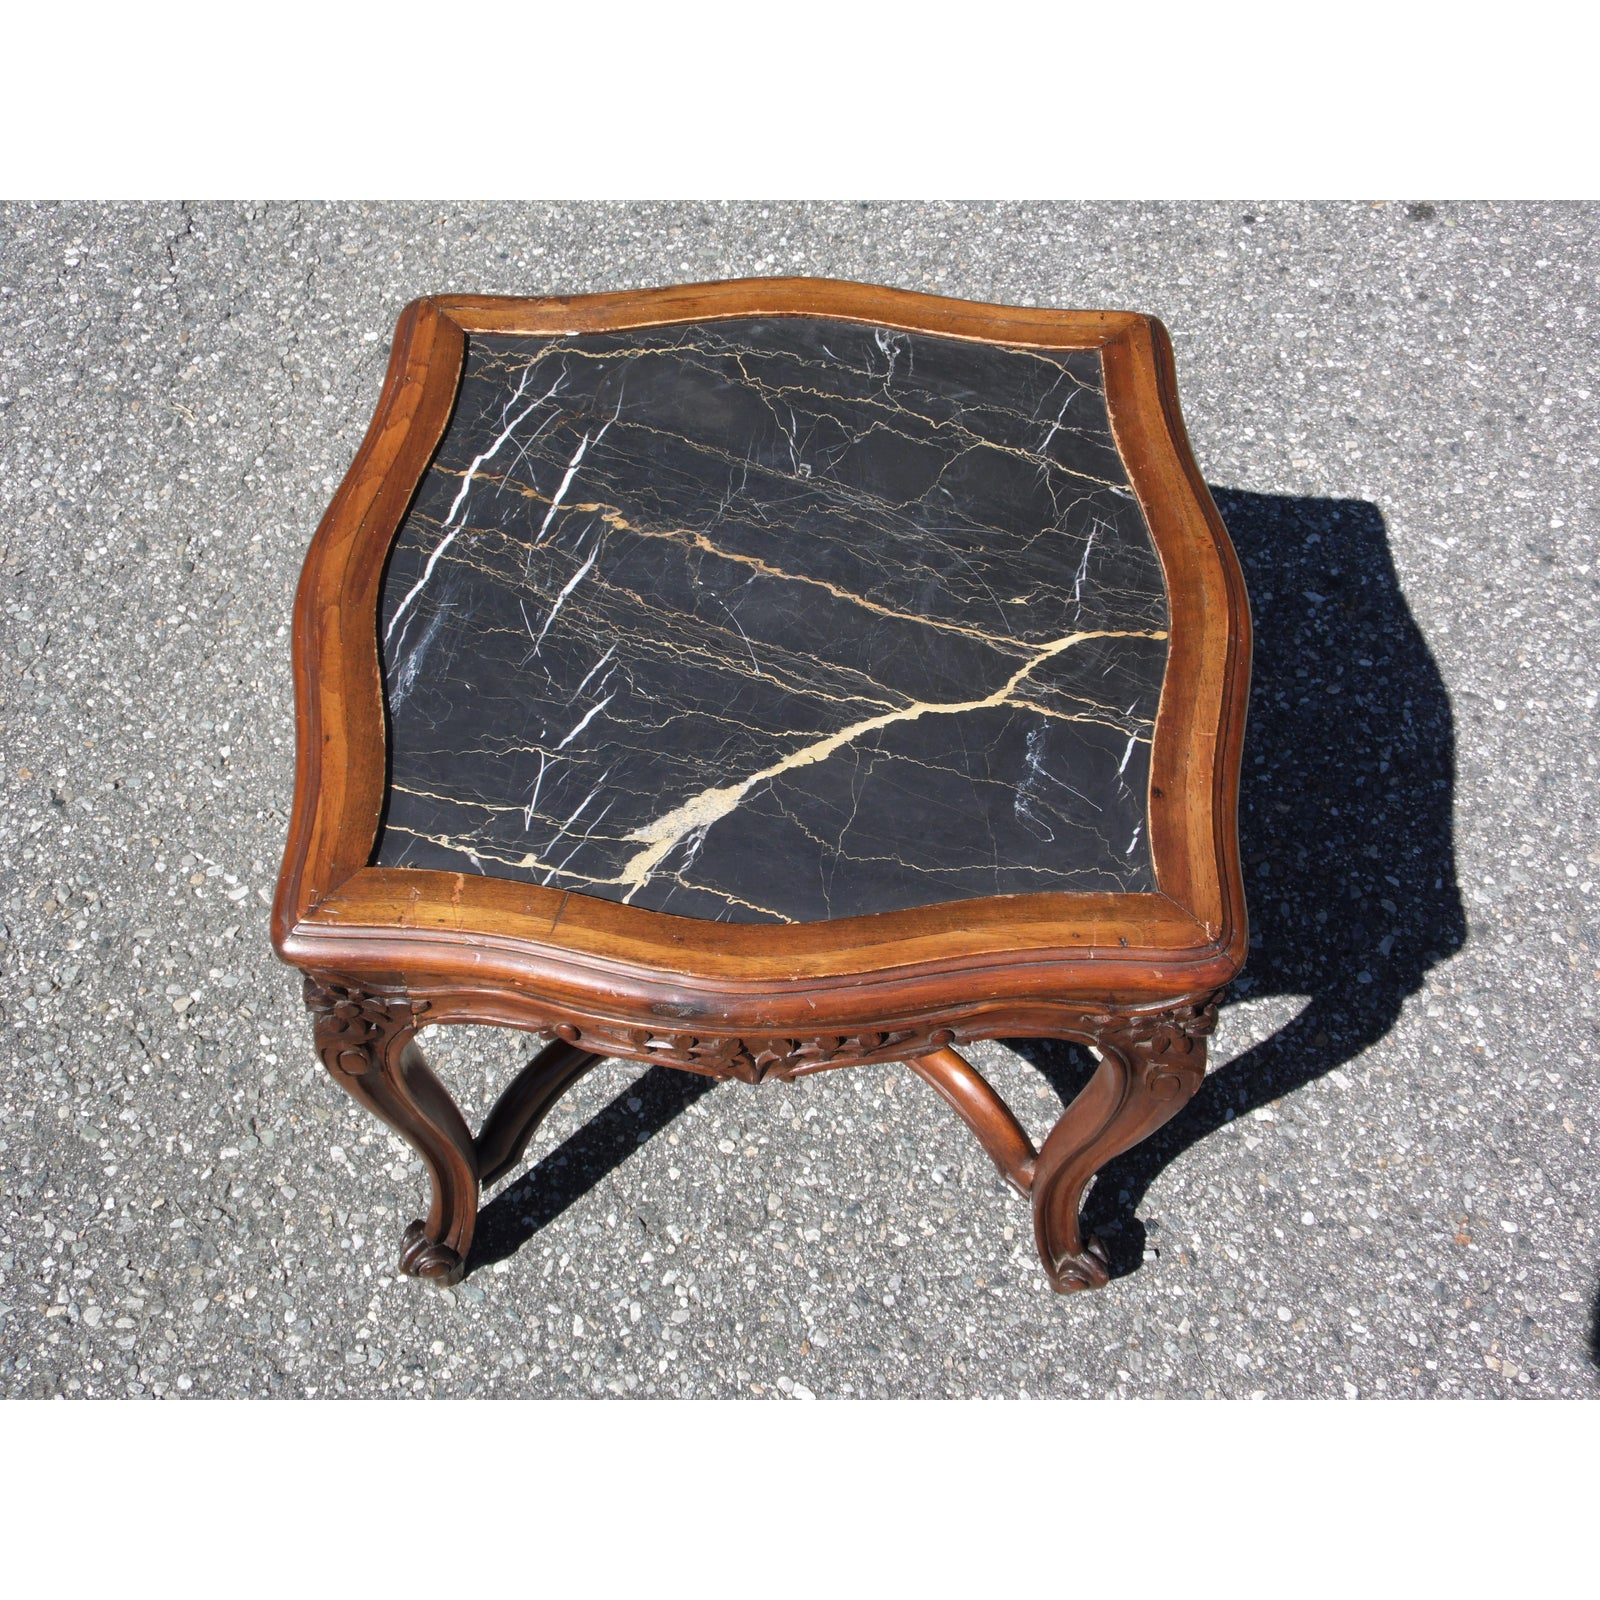 Enjoyable Vintage Antique Victorian Black Marble Top Walnut Serpentine Occasional Table Theyellowbook Wood Chair Design Ideas Theyellowbookinfo